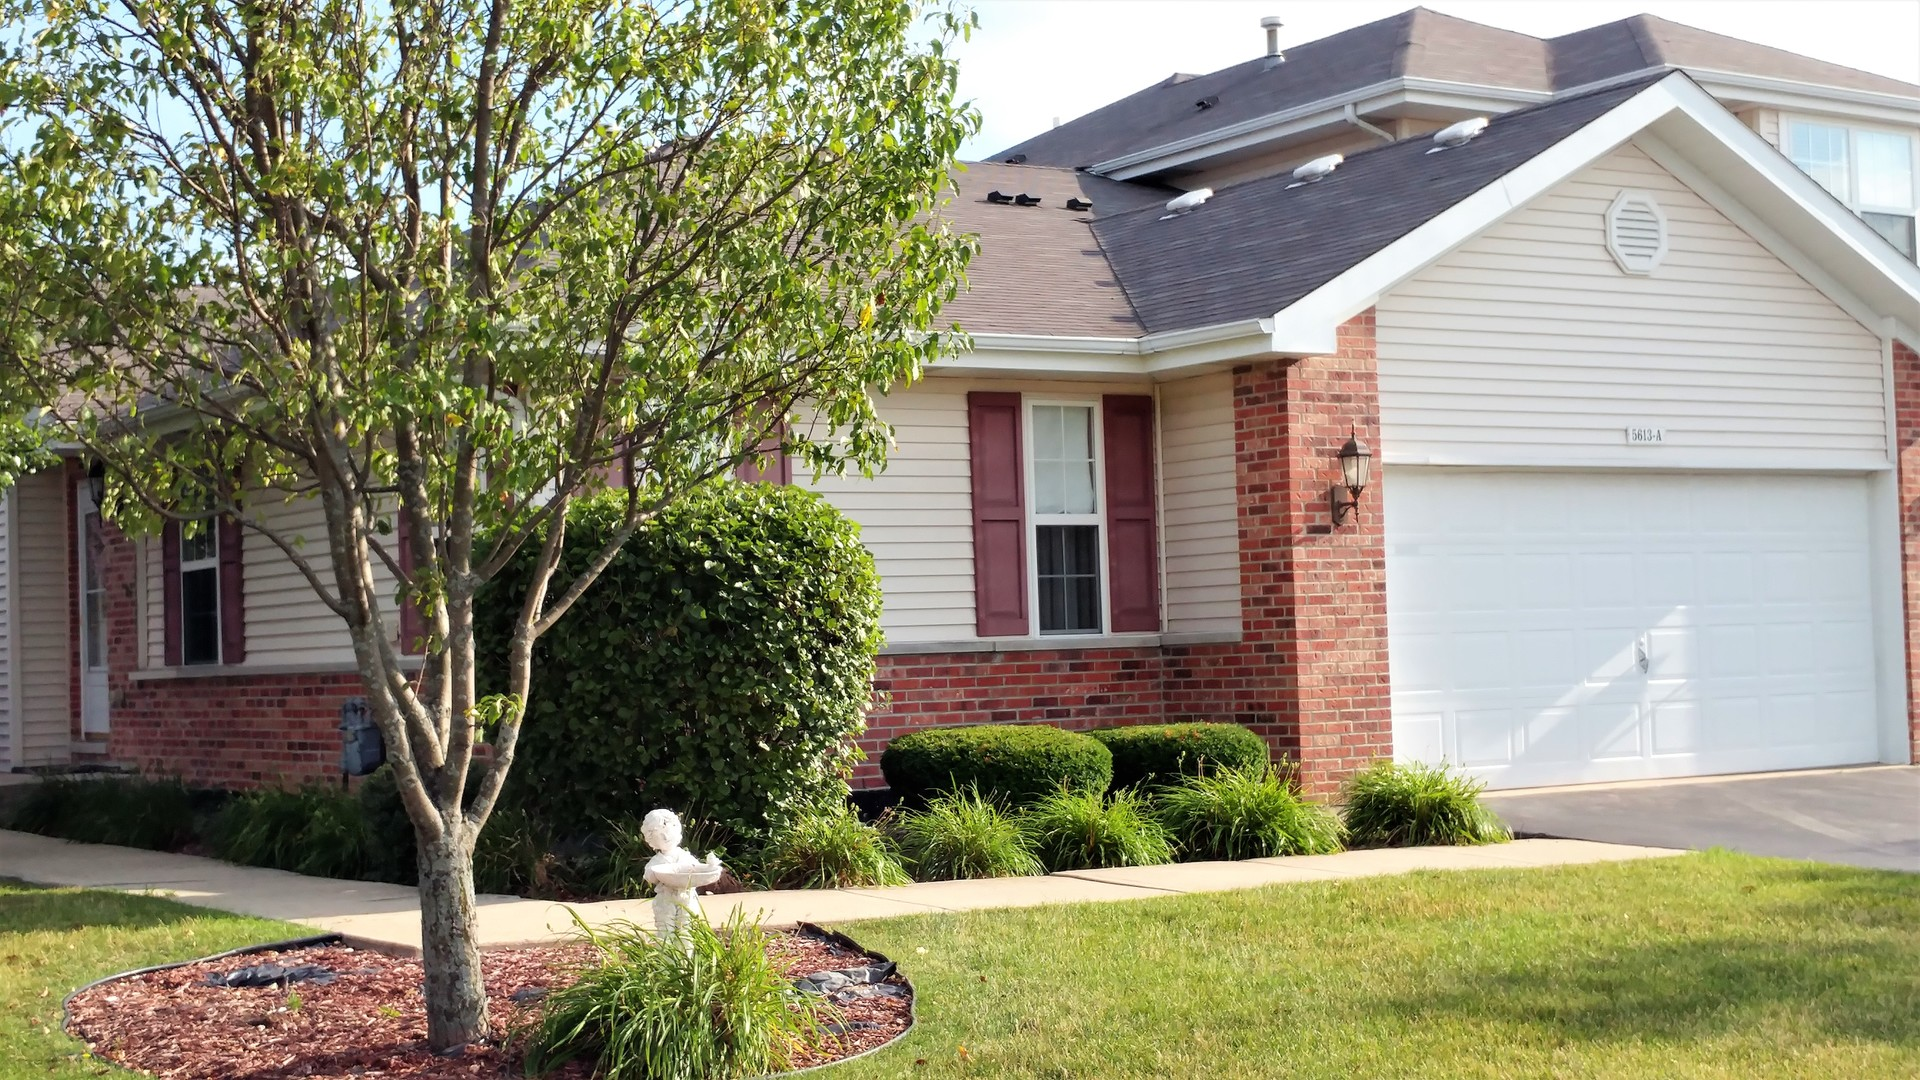 Illinois will county university park - 121 Homes For Sale For Monee Il View All